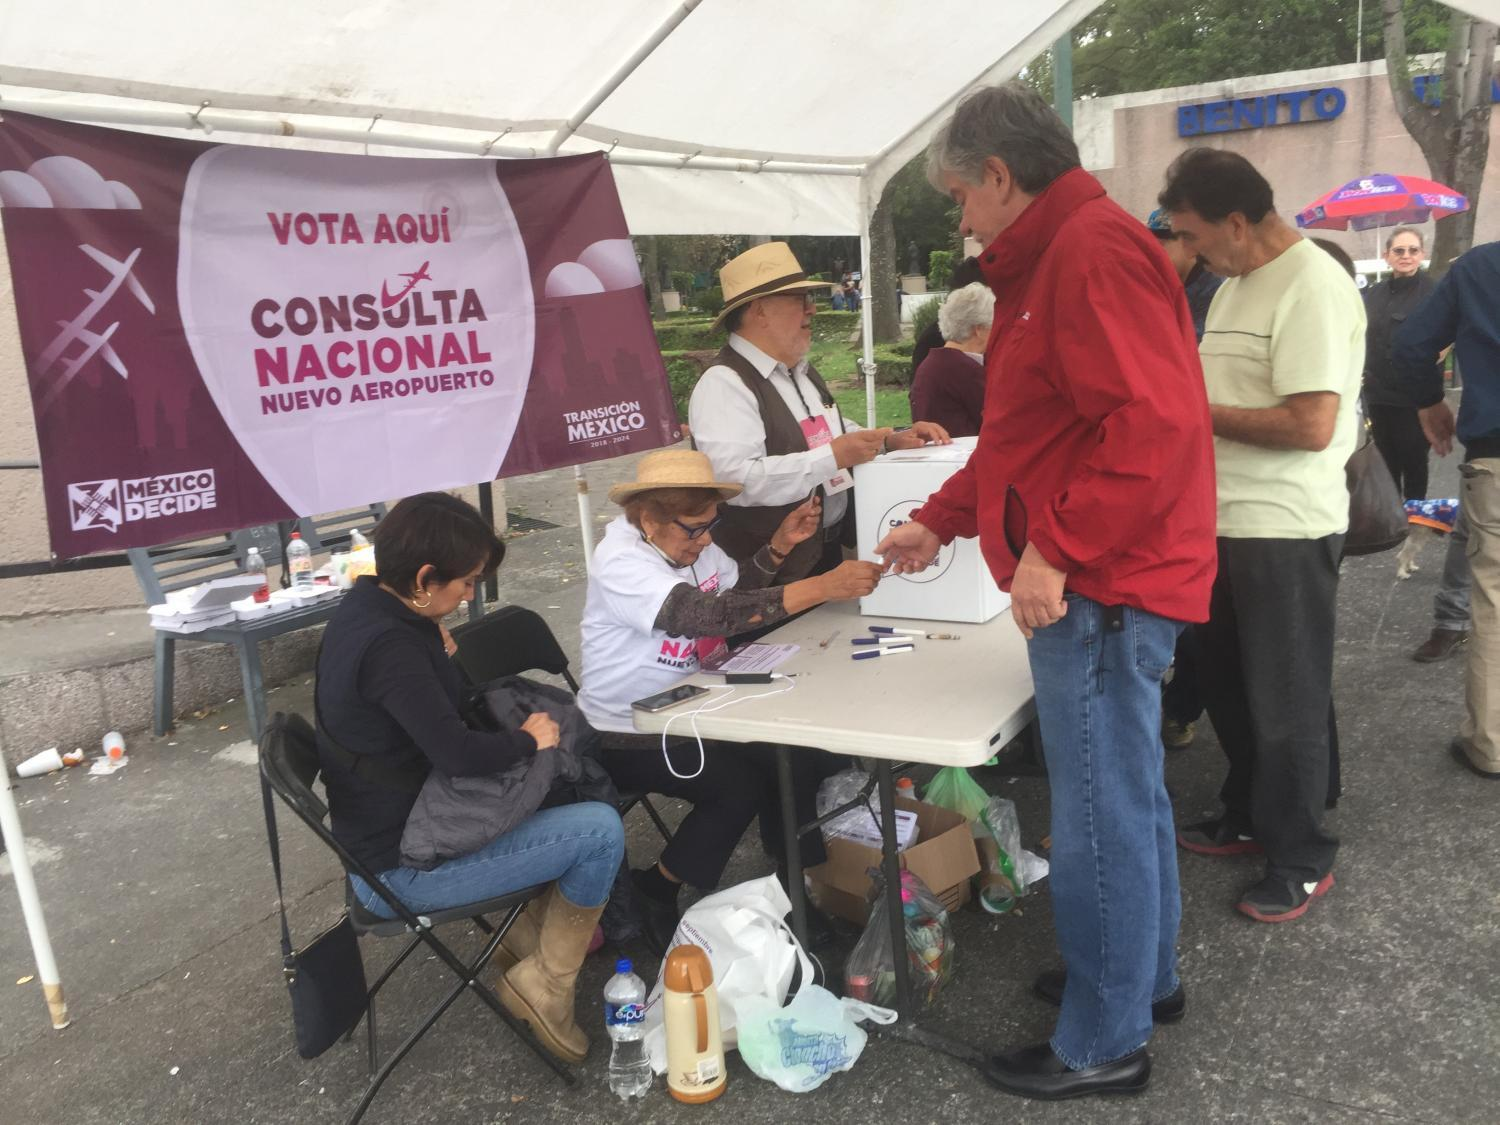 voting tent for the airport referendum in Mexico City